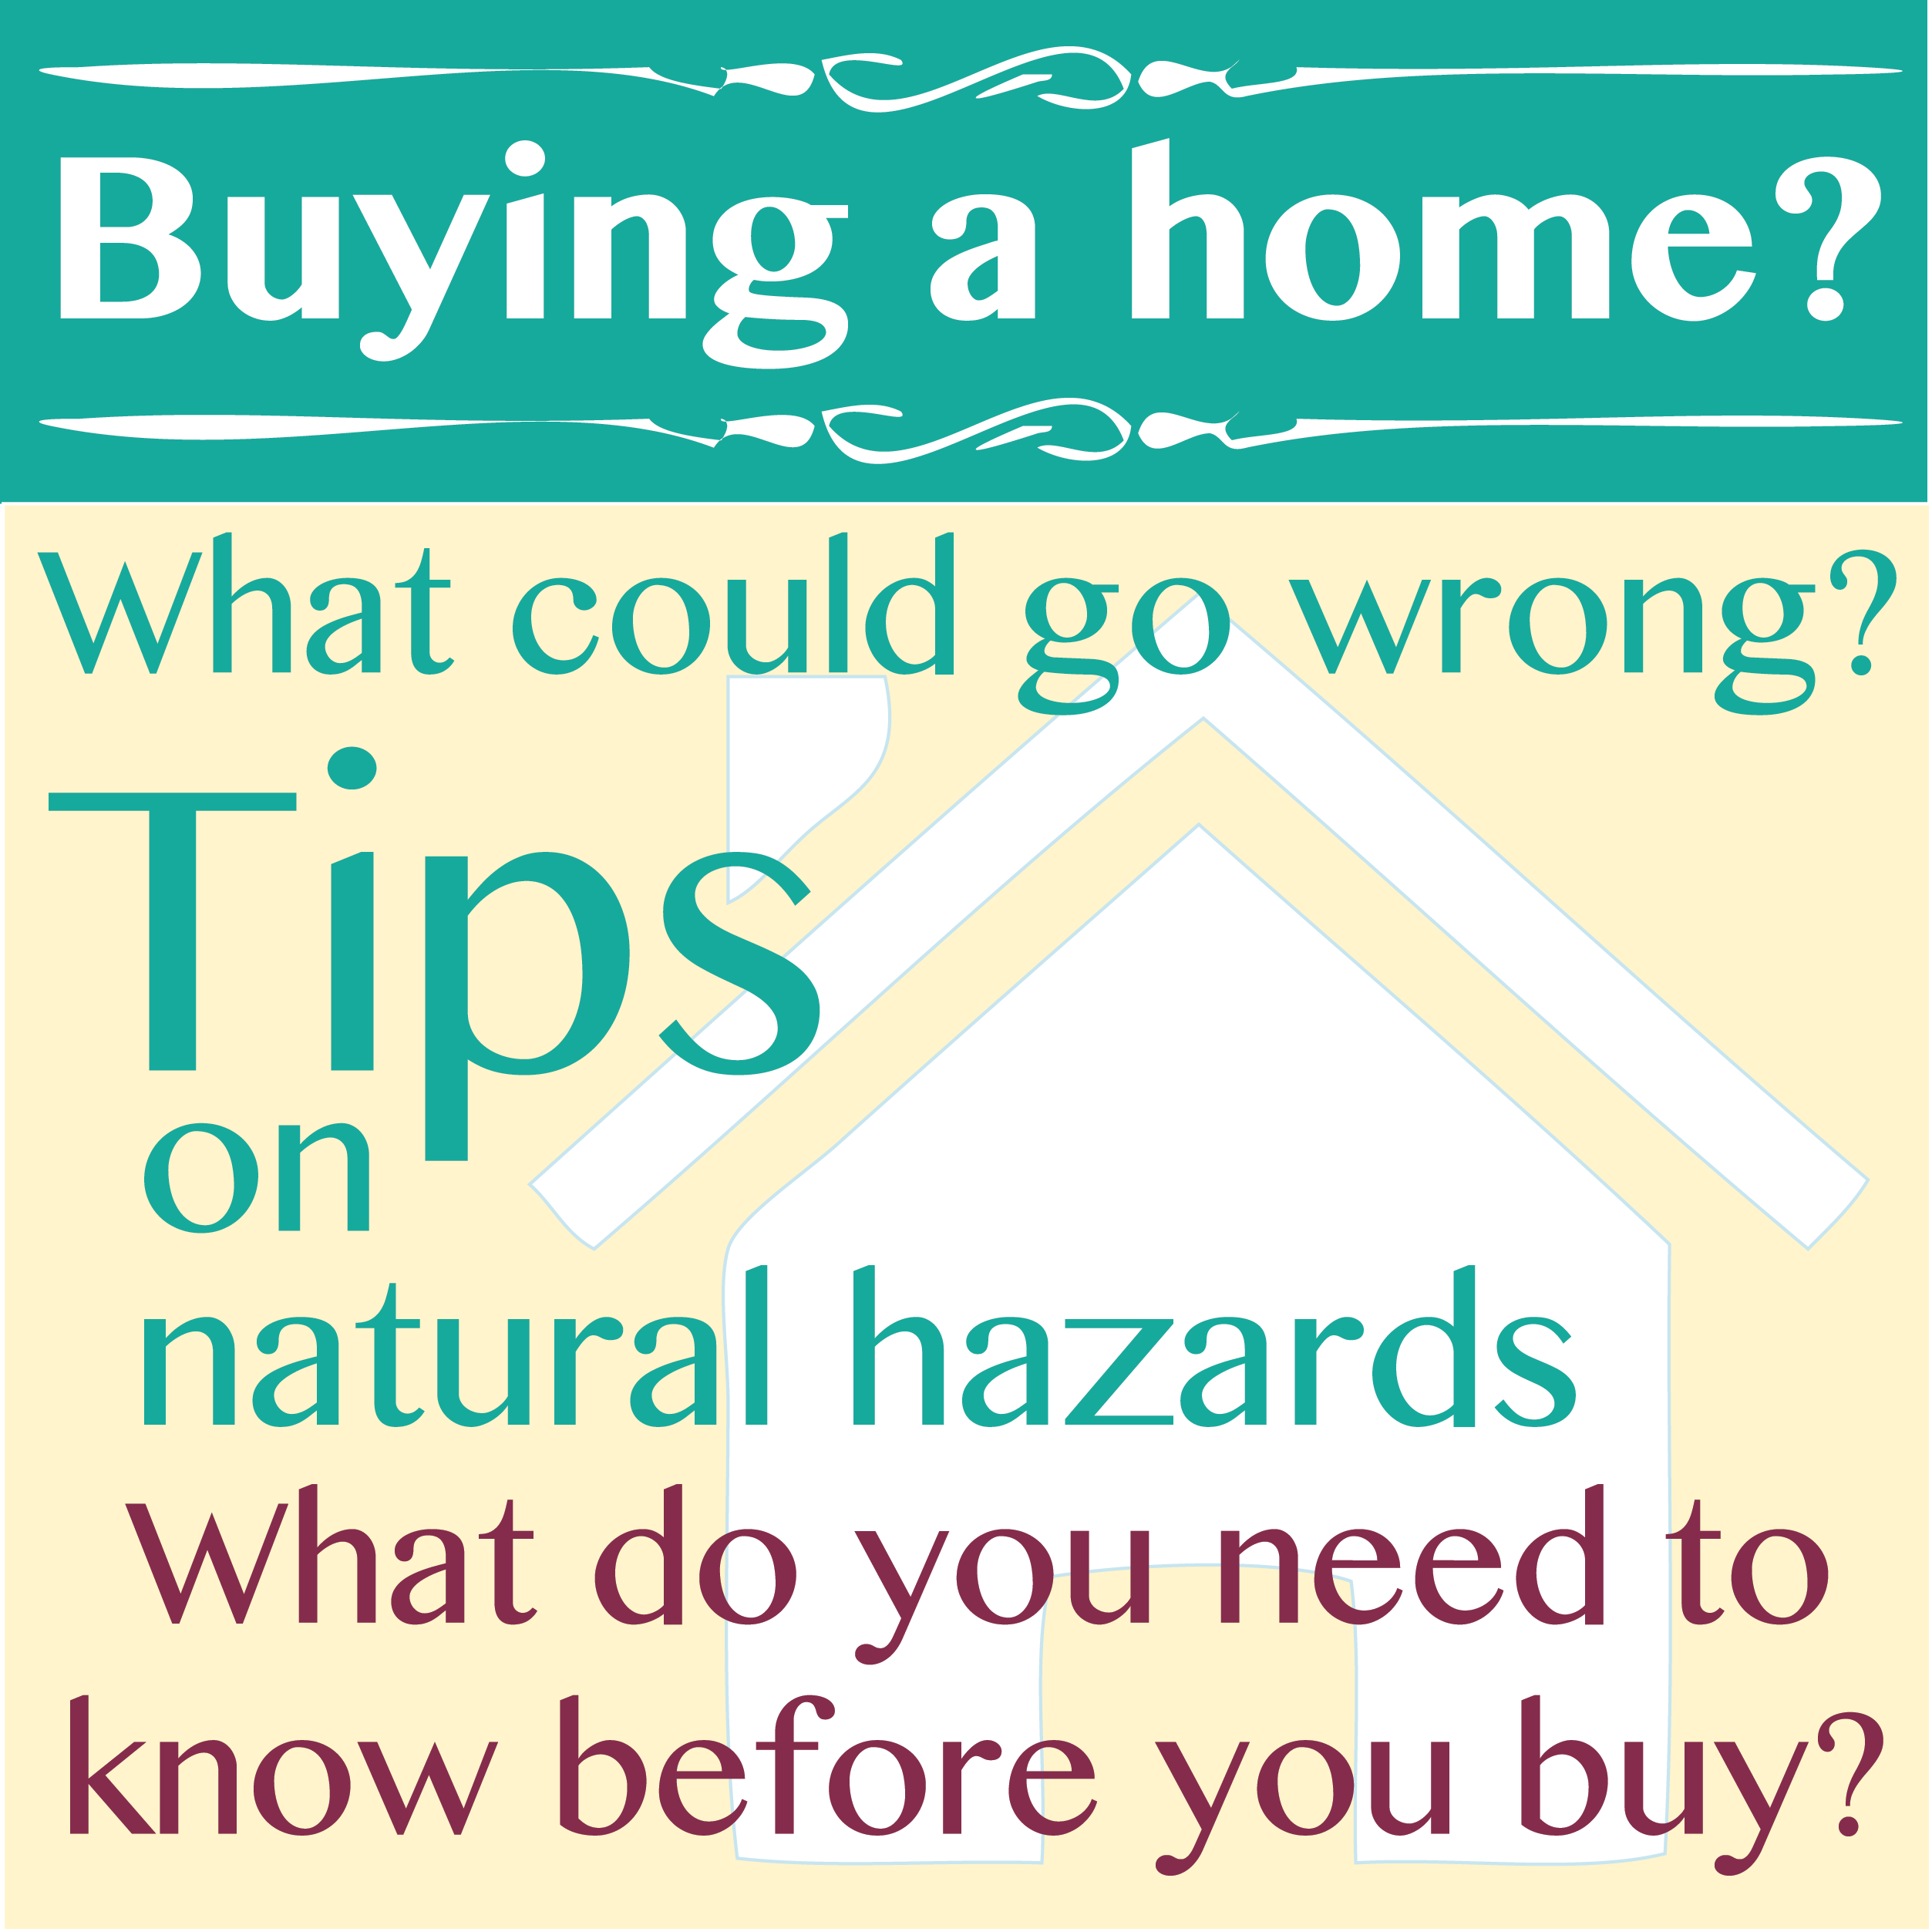 What Do You Need To Know Before Buying